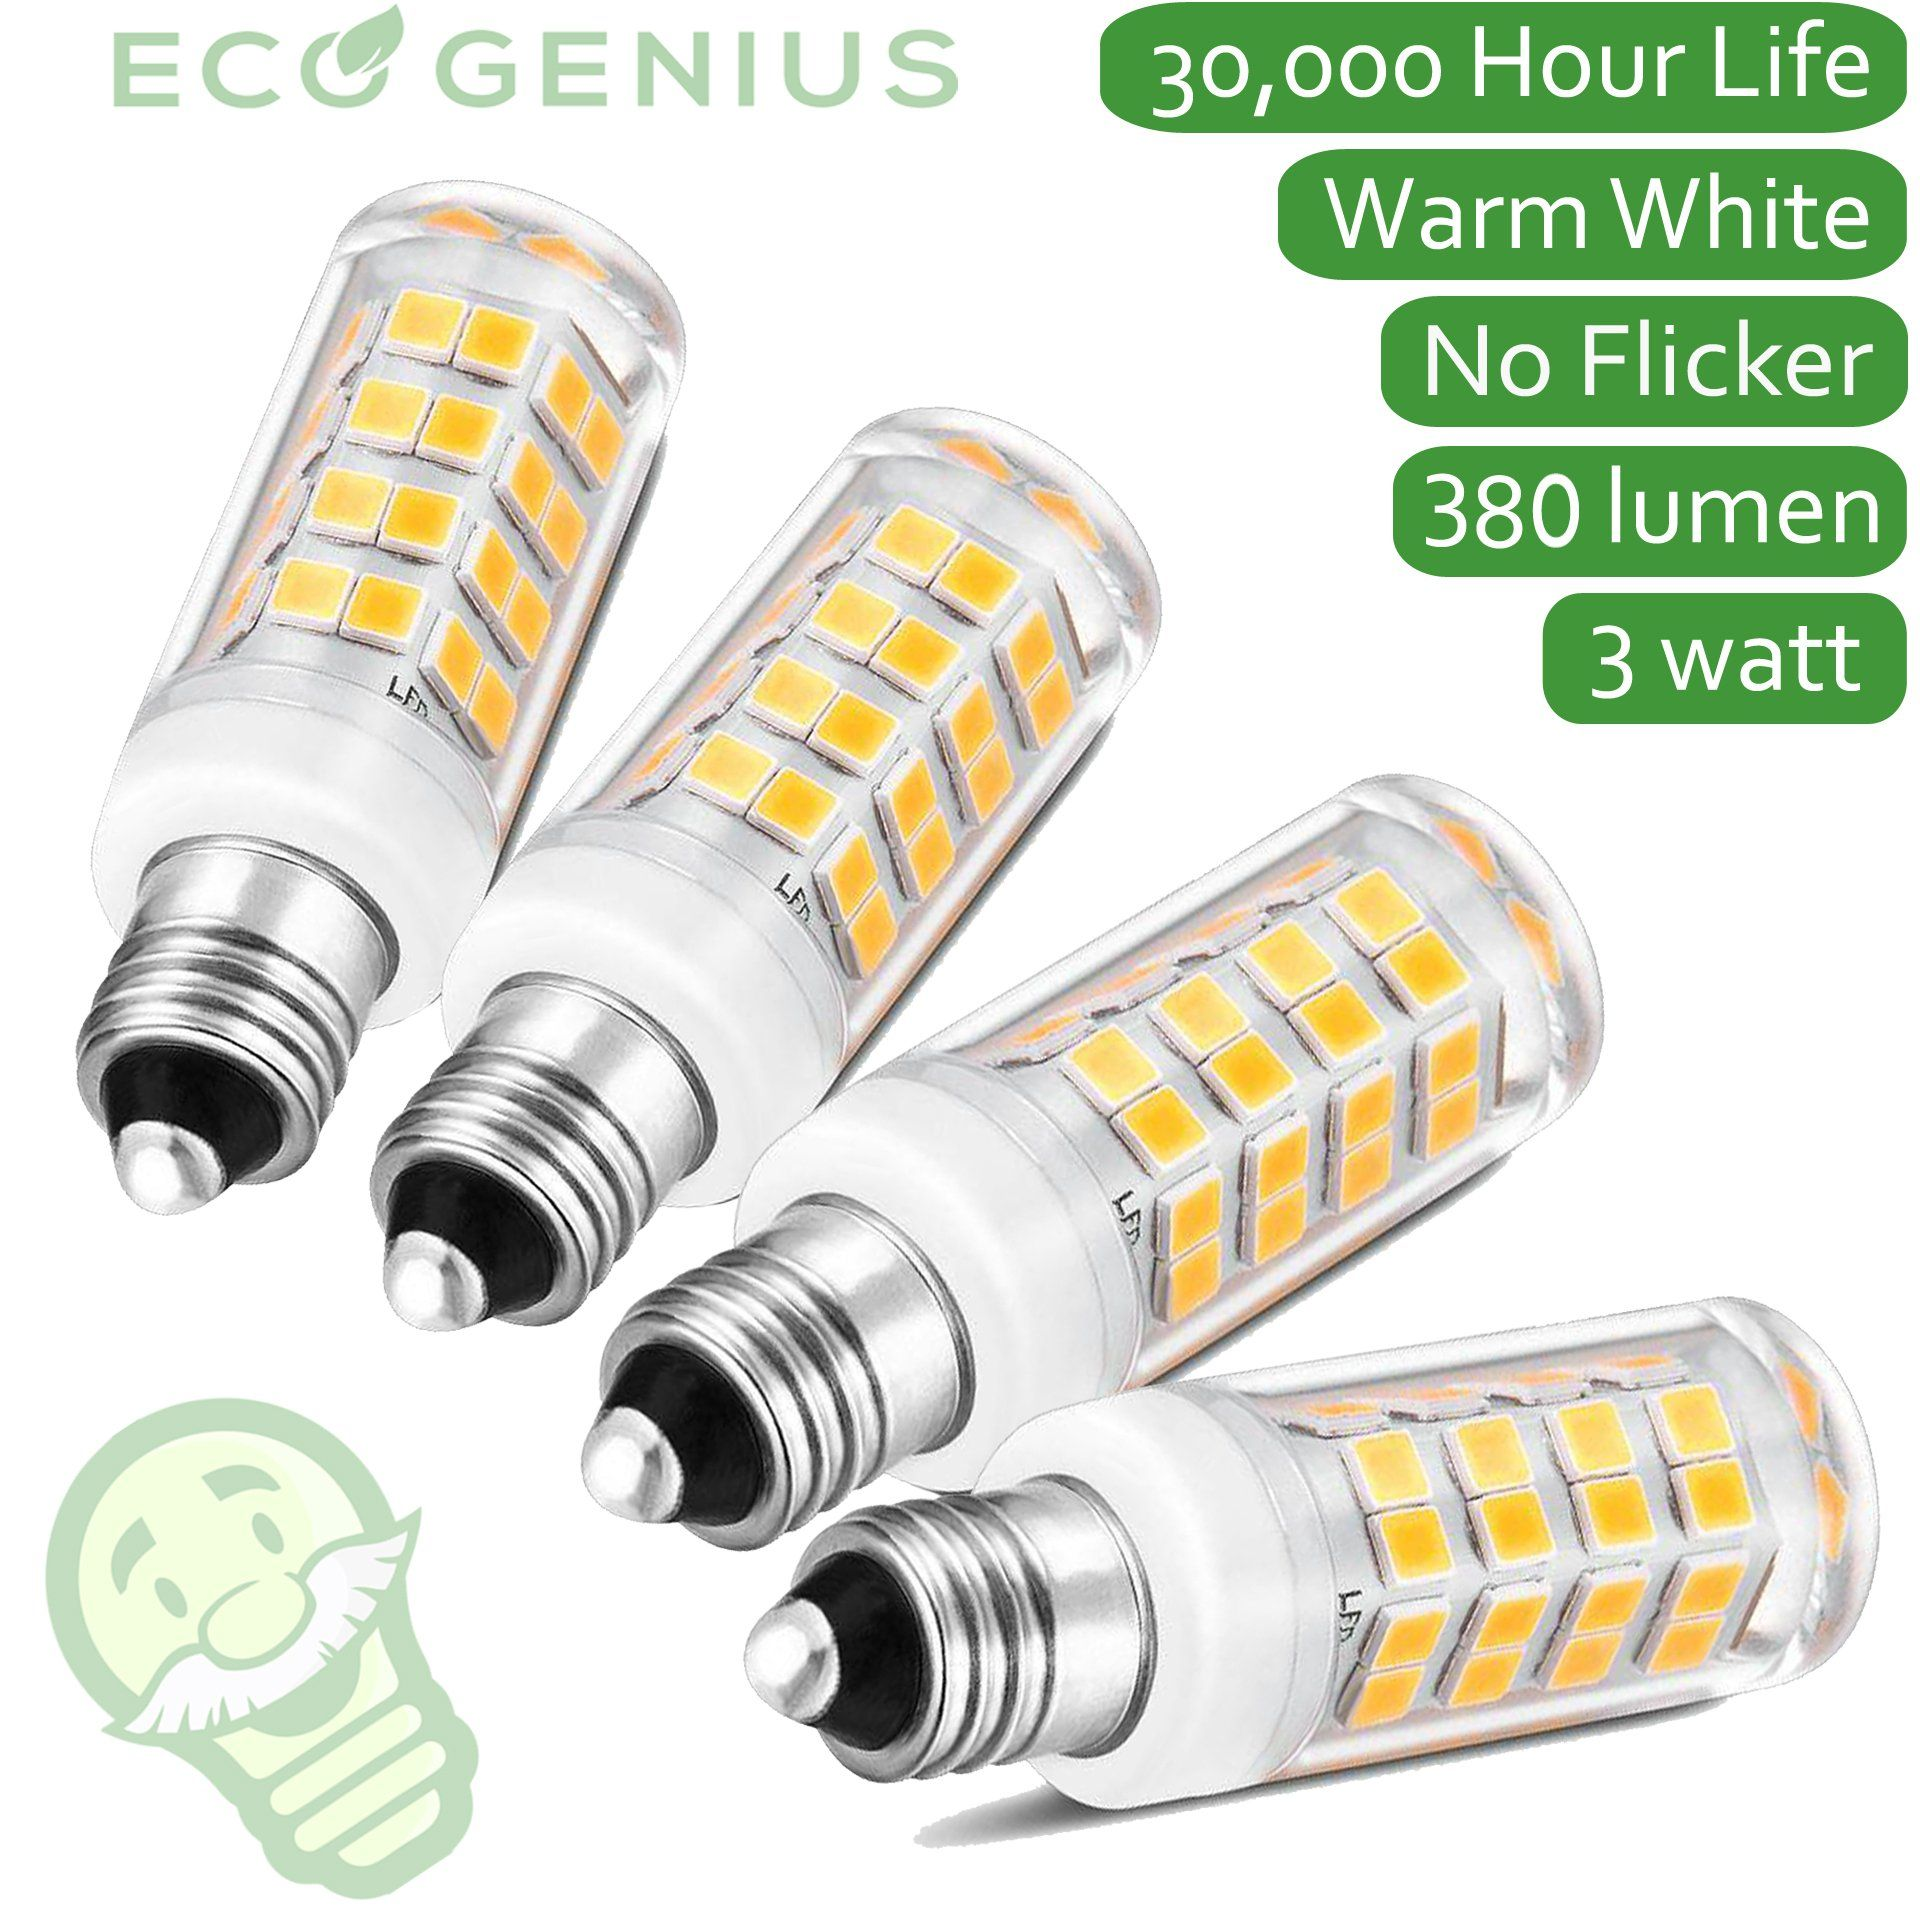 Eco genius e11 base led light bulb 380lm mini candelabra ultra eco genius e11 base led light bulb 380lm mini candelabra ultra energy efficient arubaitofo Gallery